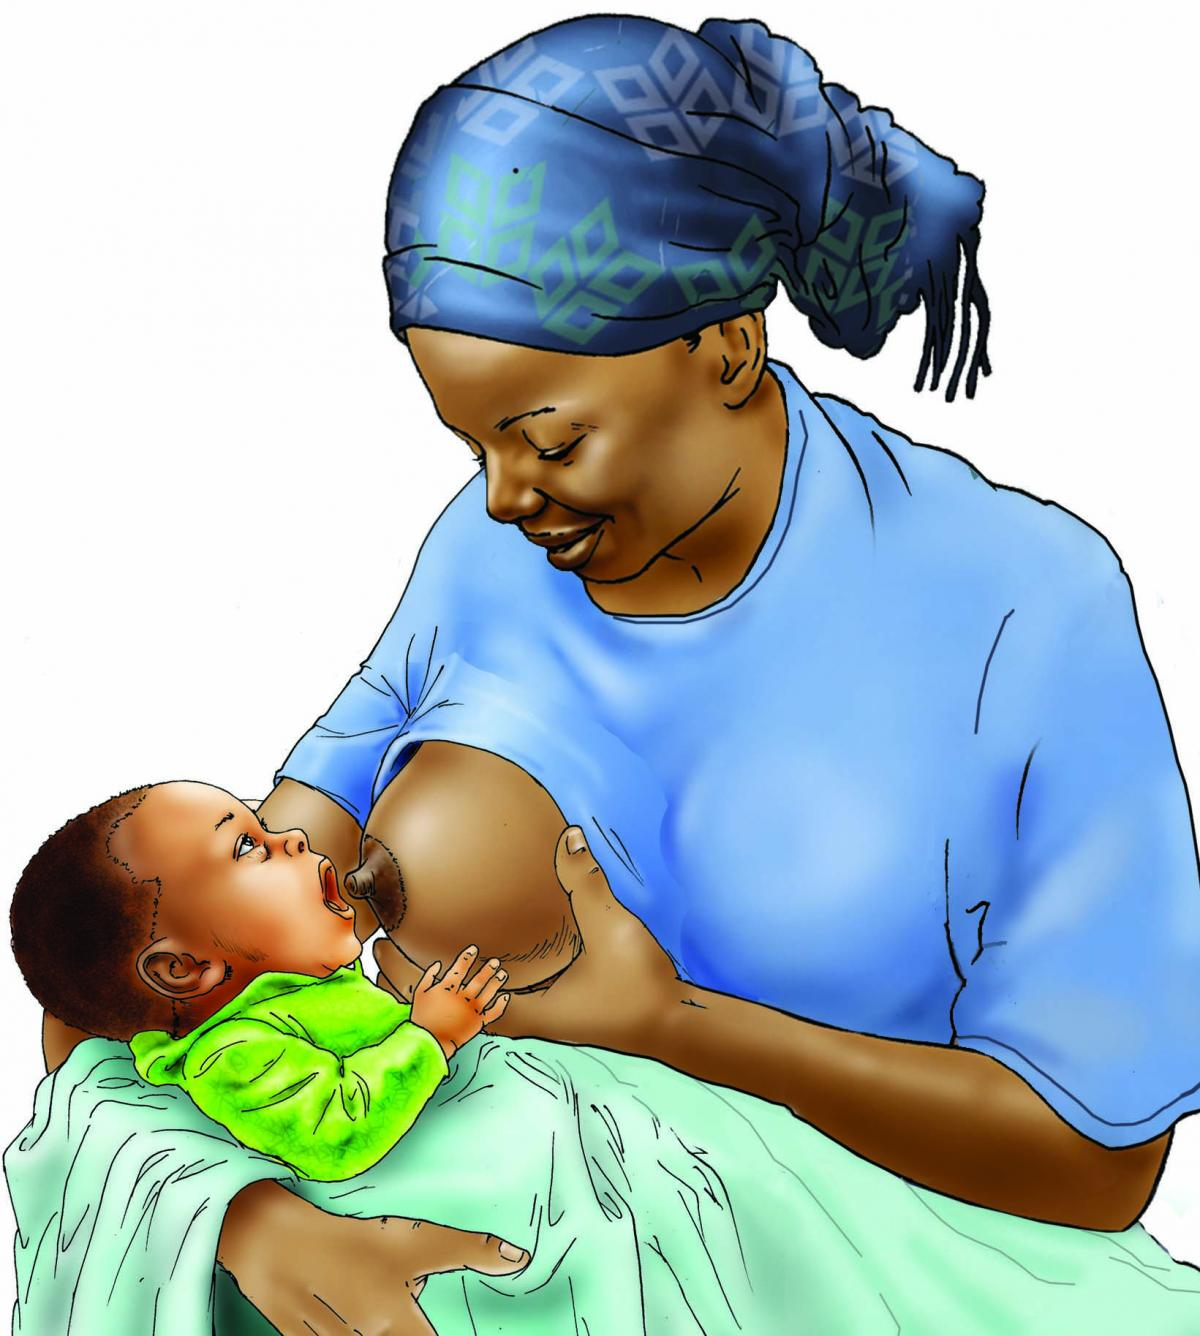 Breastfeeding - Breastfeeding pre-attachment 0-6 mo - 05E - Niger